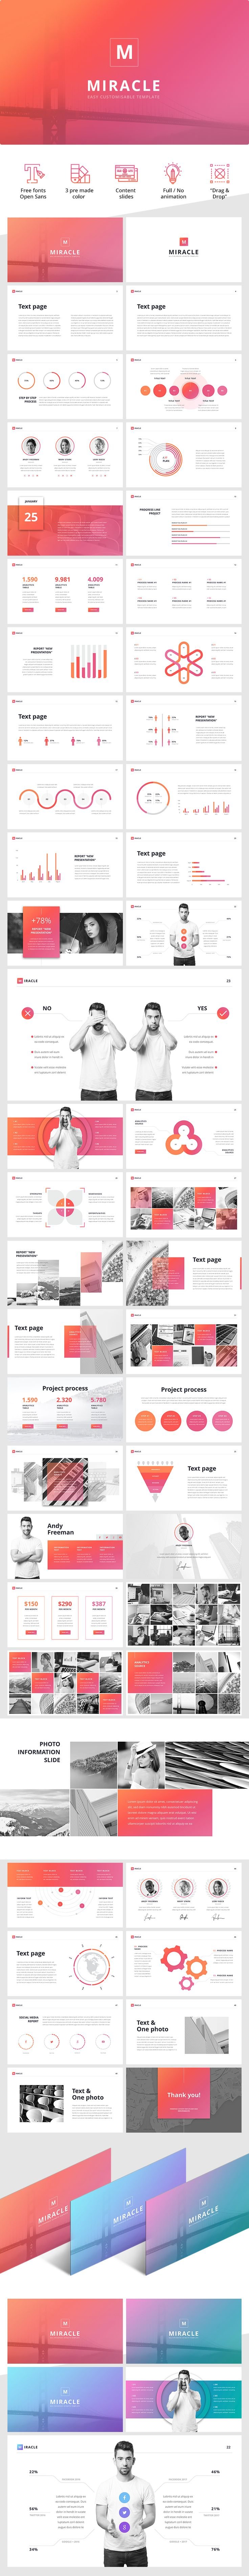 NEW PowerPoint Template Download link: http://site2max.pro/miracle-powerpoint-template/ #ppt #pptx #powerpoint #slide #slides #template #chart #infographic #design #presentation #miracle #marketing